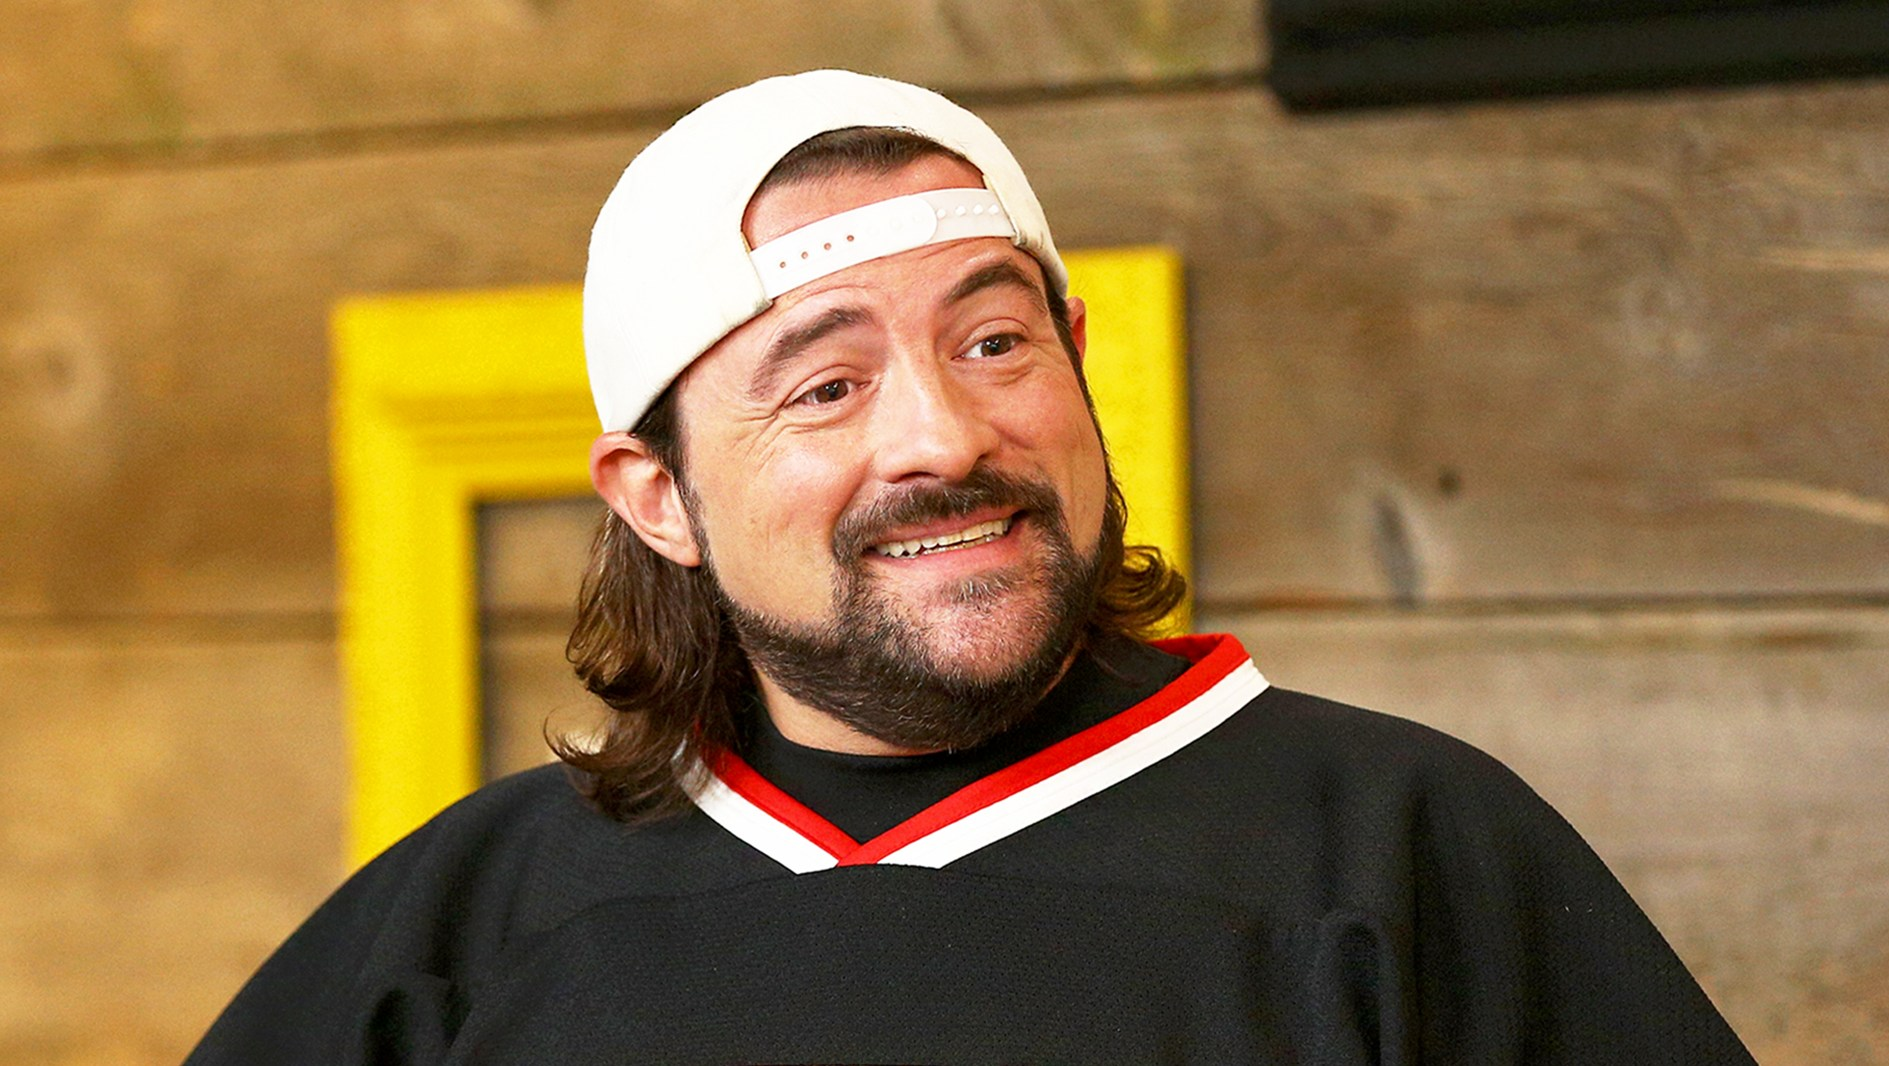 Kevin Smith attends the 2018 Sundance Film Festival in Park City, Utah.